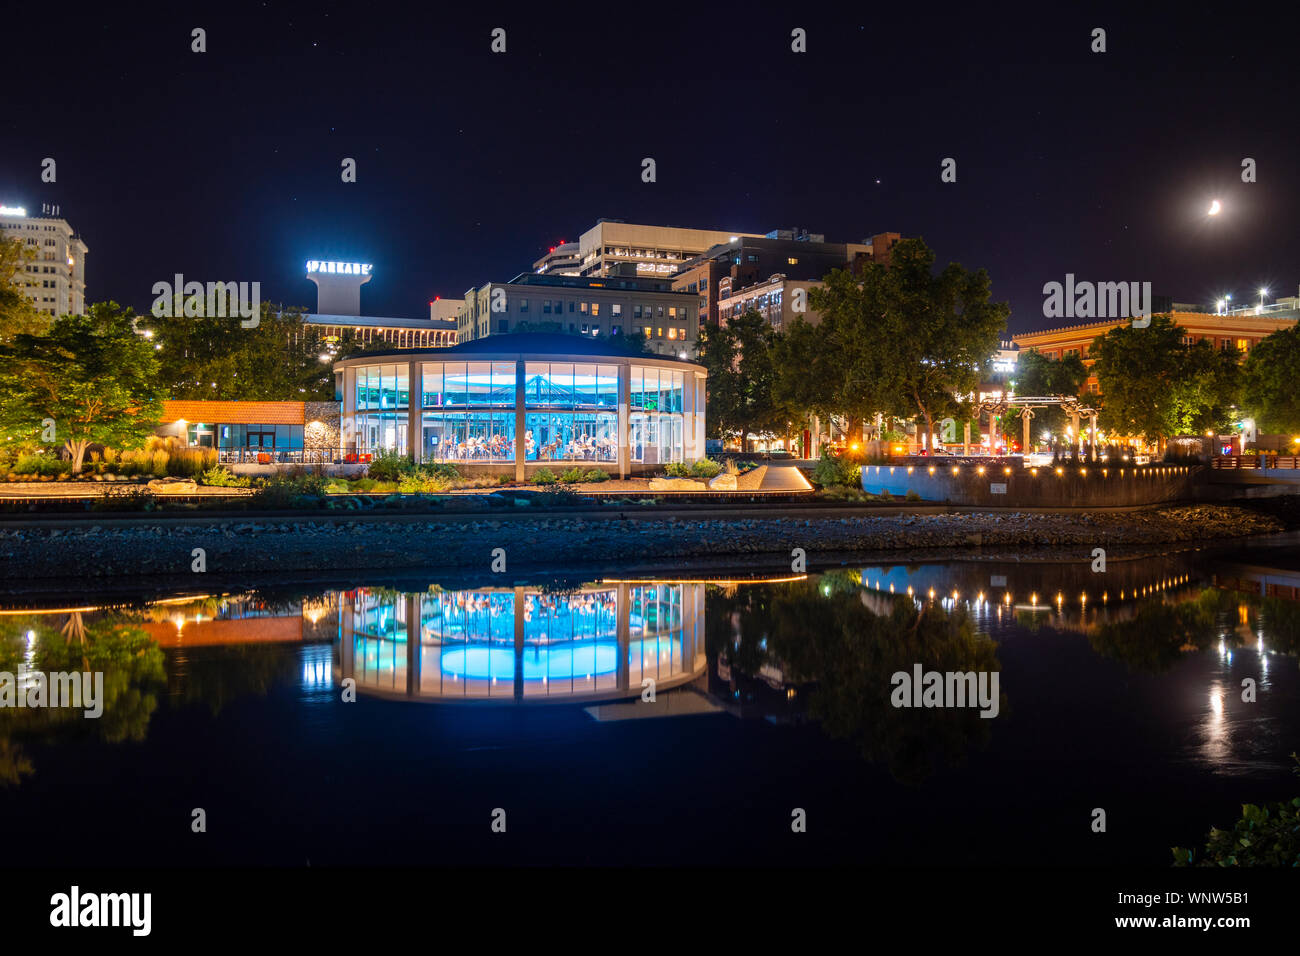 Evening at the illuminated Looff Carousel which runs along the Spokane River at Riverfront Park in Downtown Spokane, Washington Stock Photo